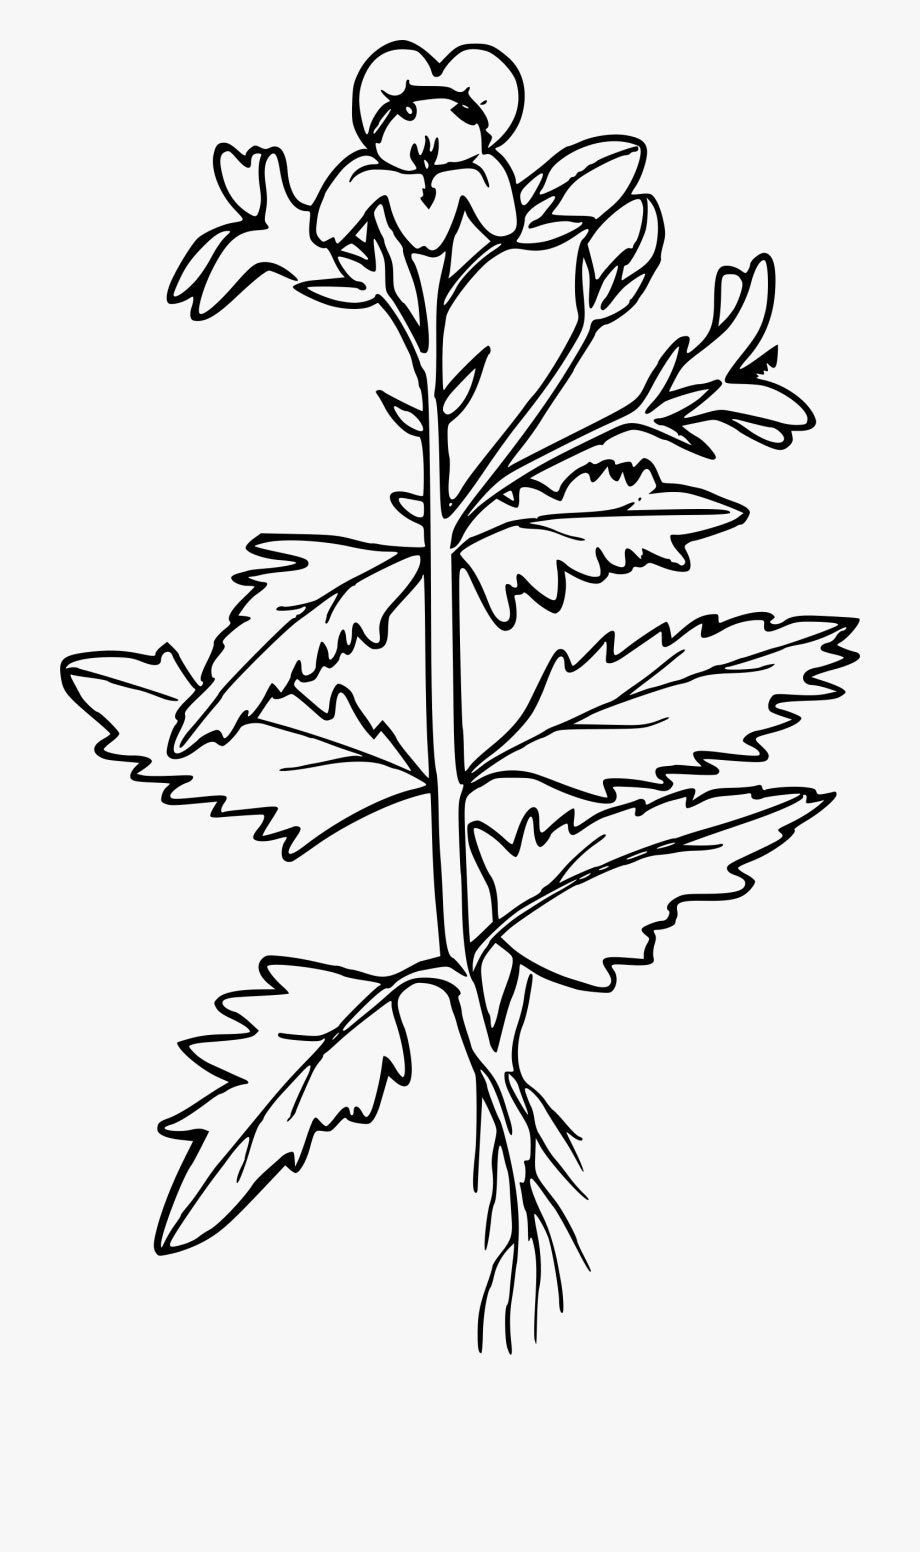 Sketch-of-White-Mustard